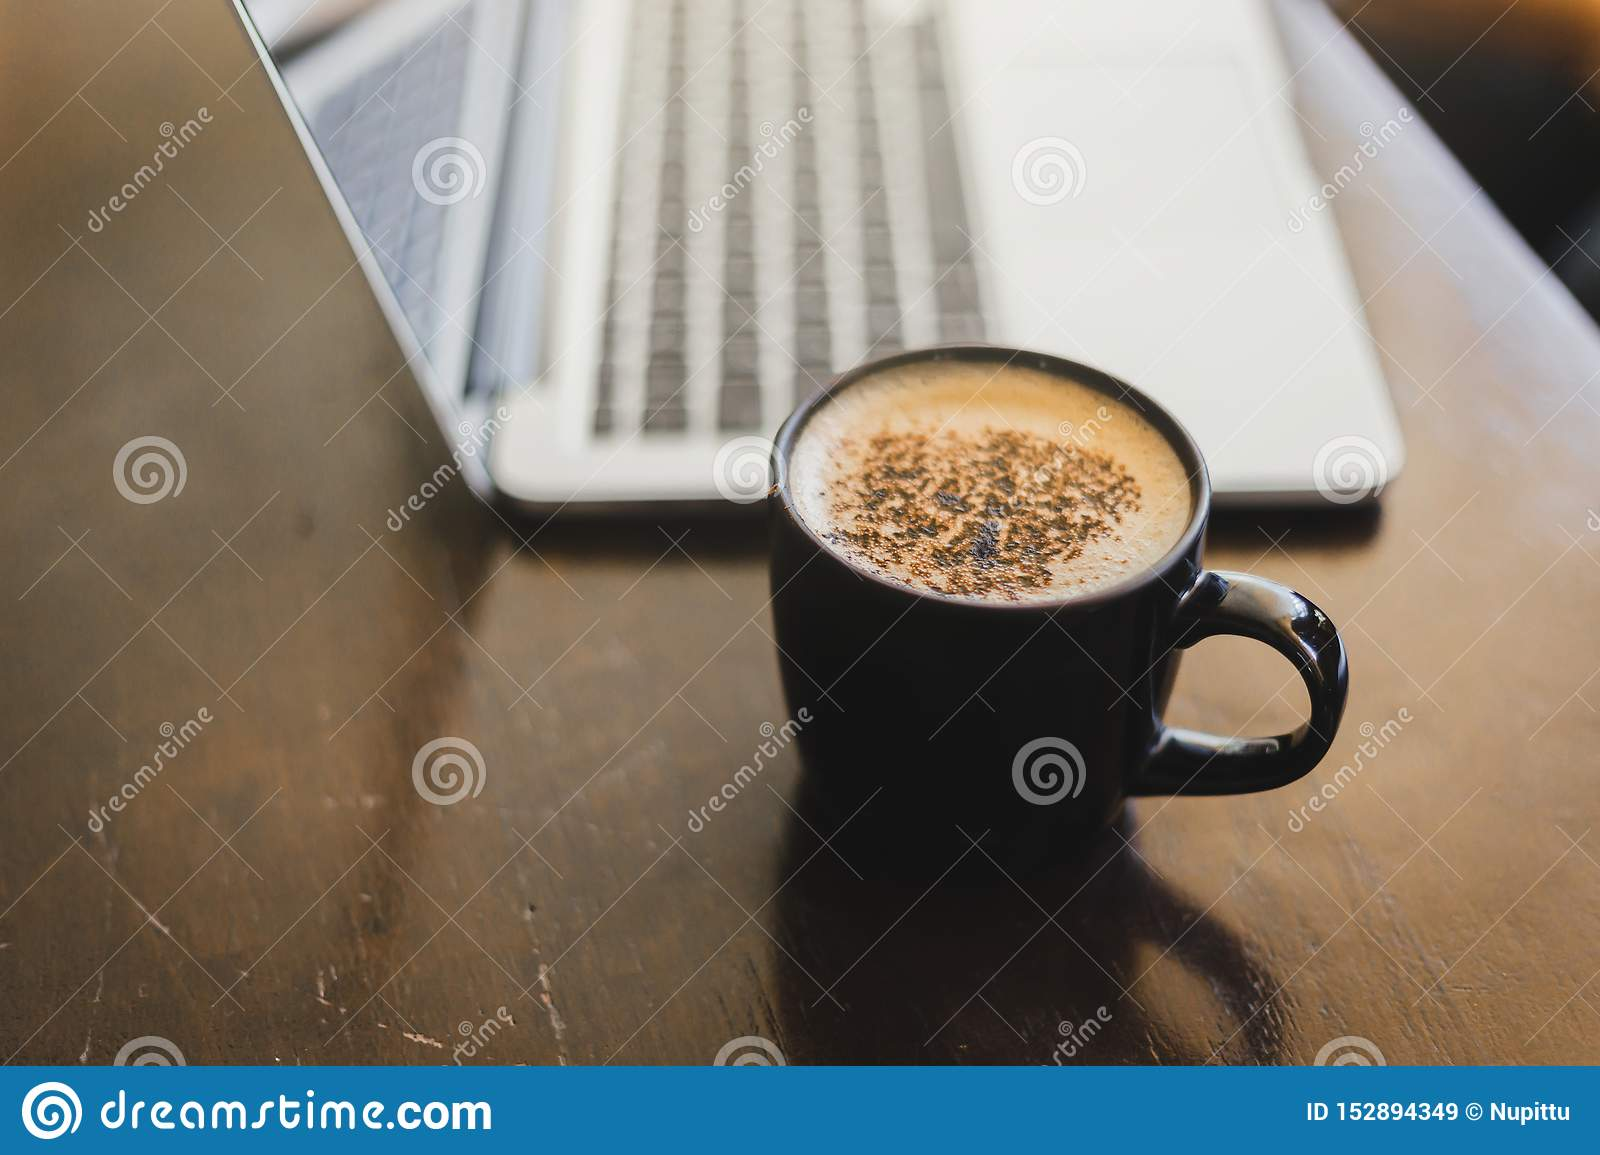 Laptop and coffee cup at his working place in Cafe. working other place for business.